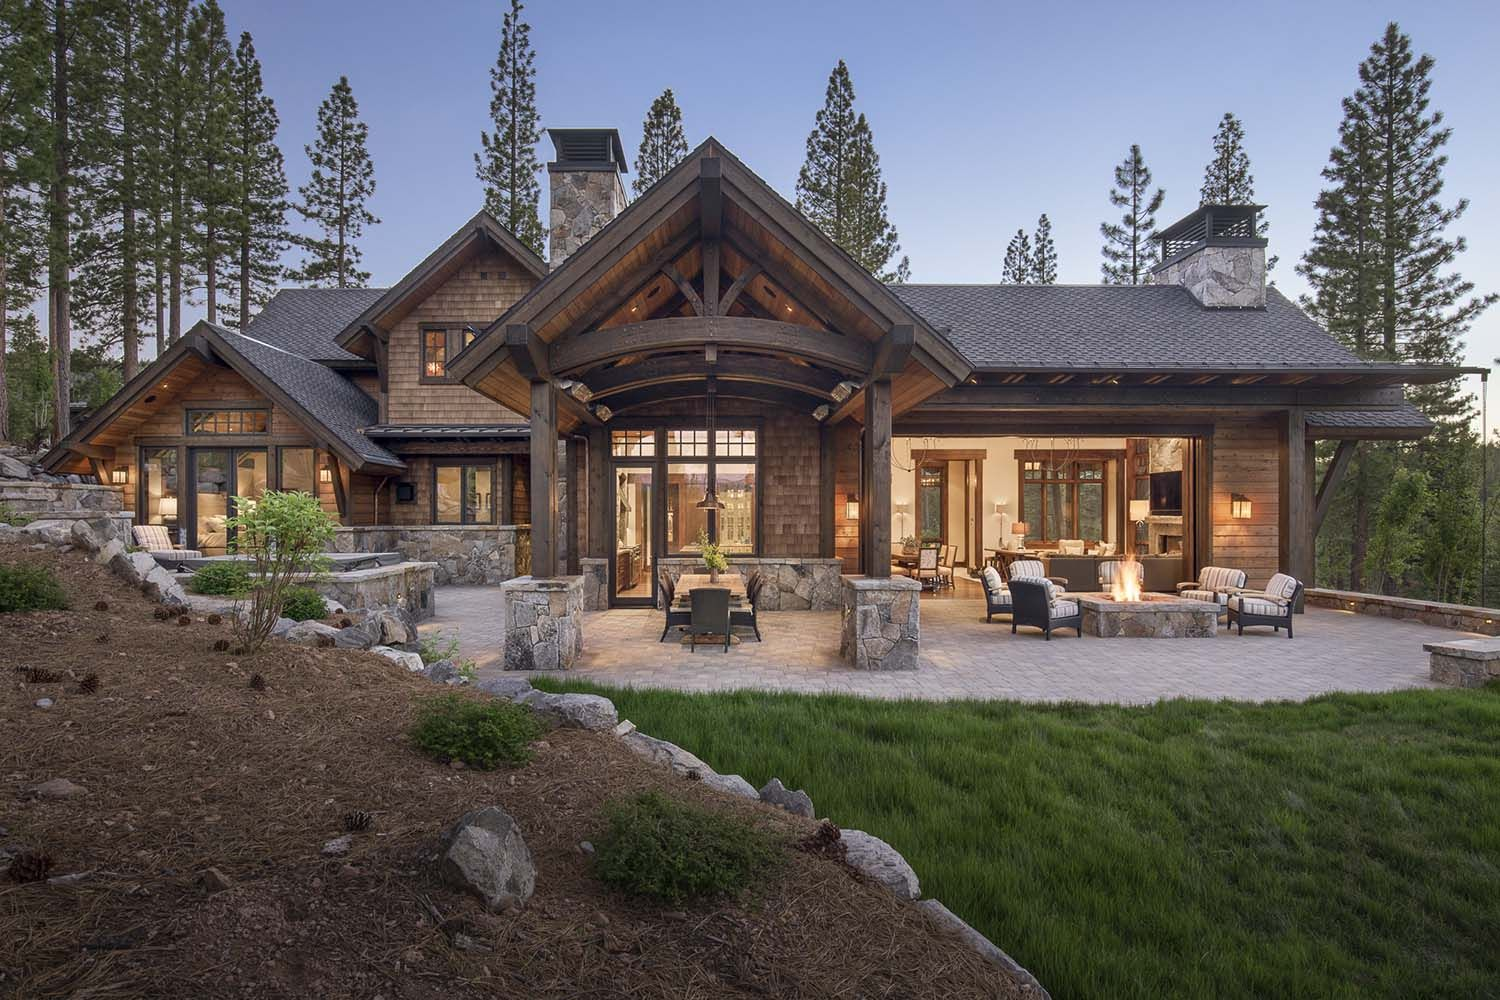 Photo of Gorgeous rustic mountain retreat with stylish interiors in Martis Camp